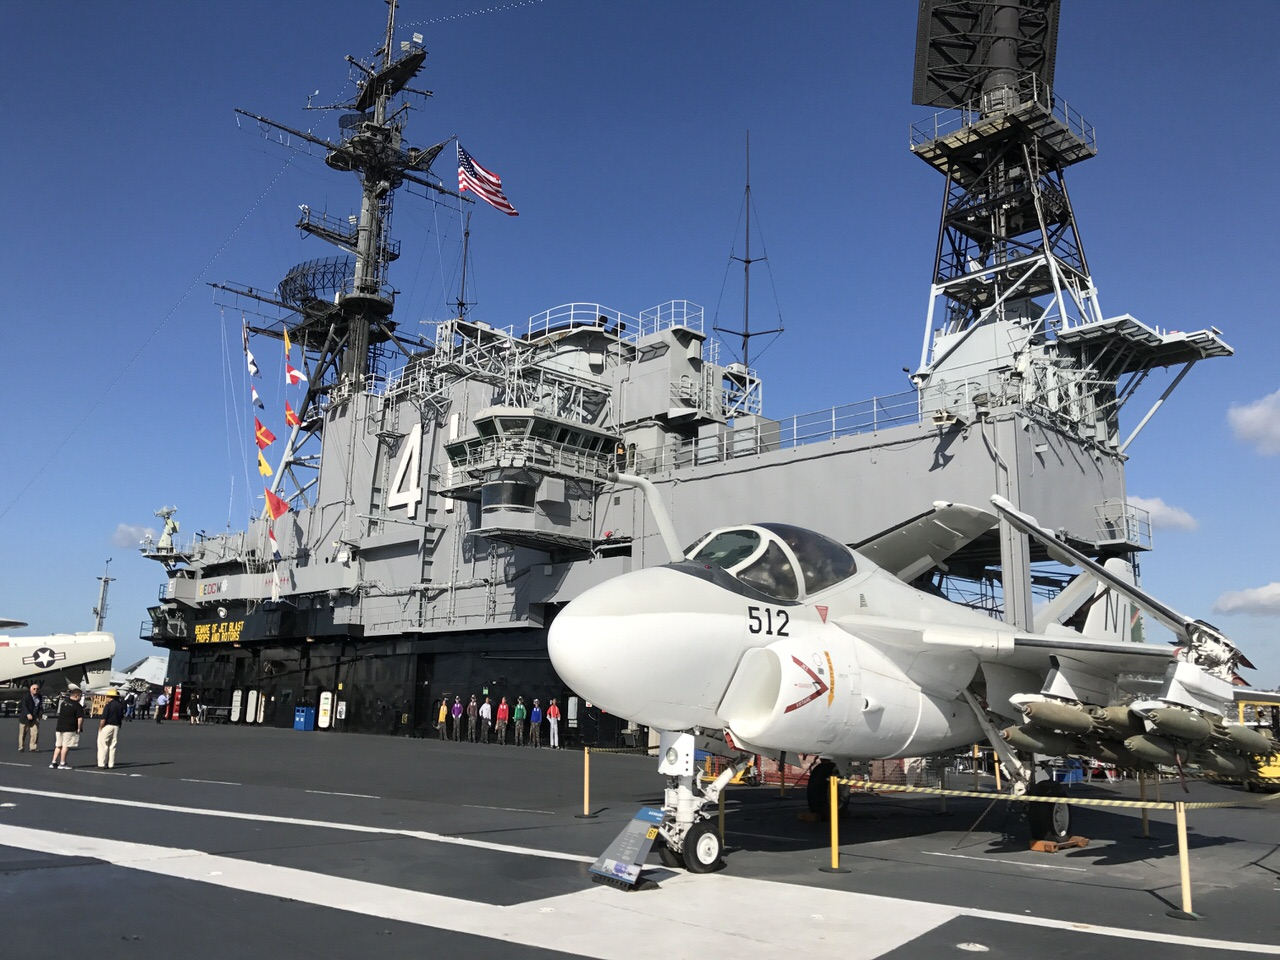 Uss midway museum 0567